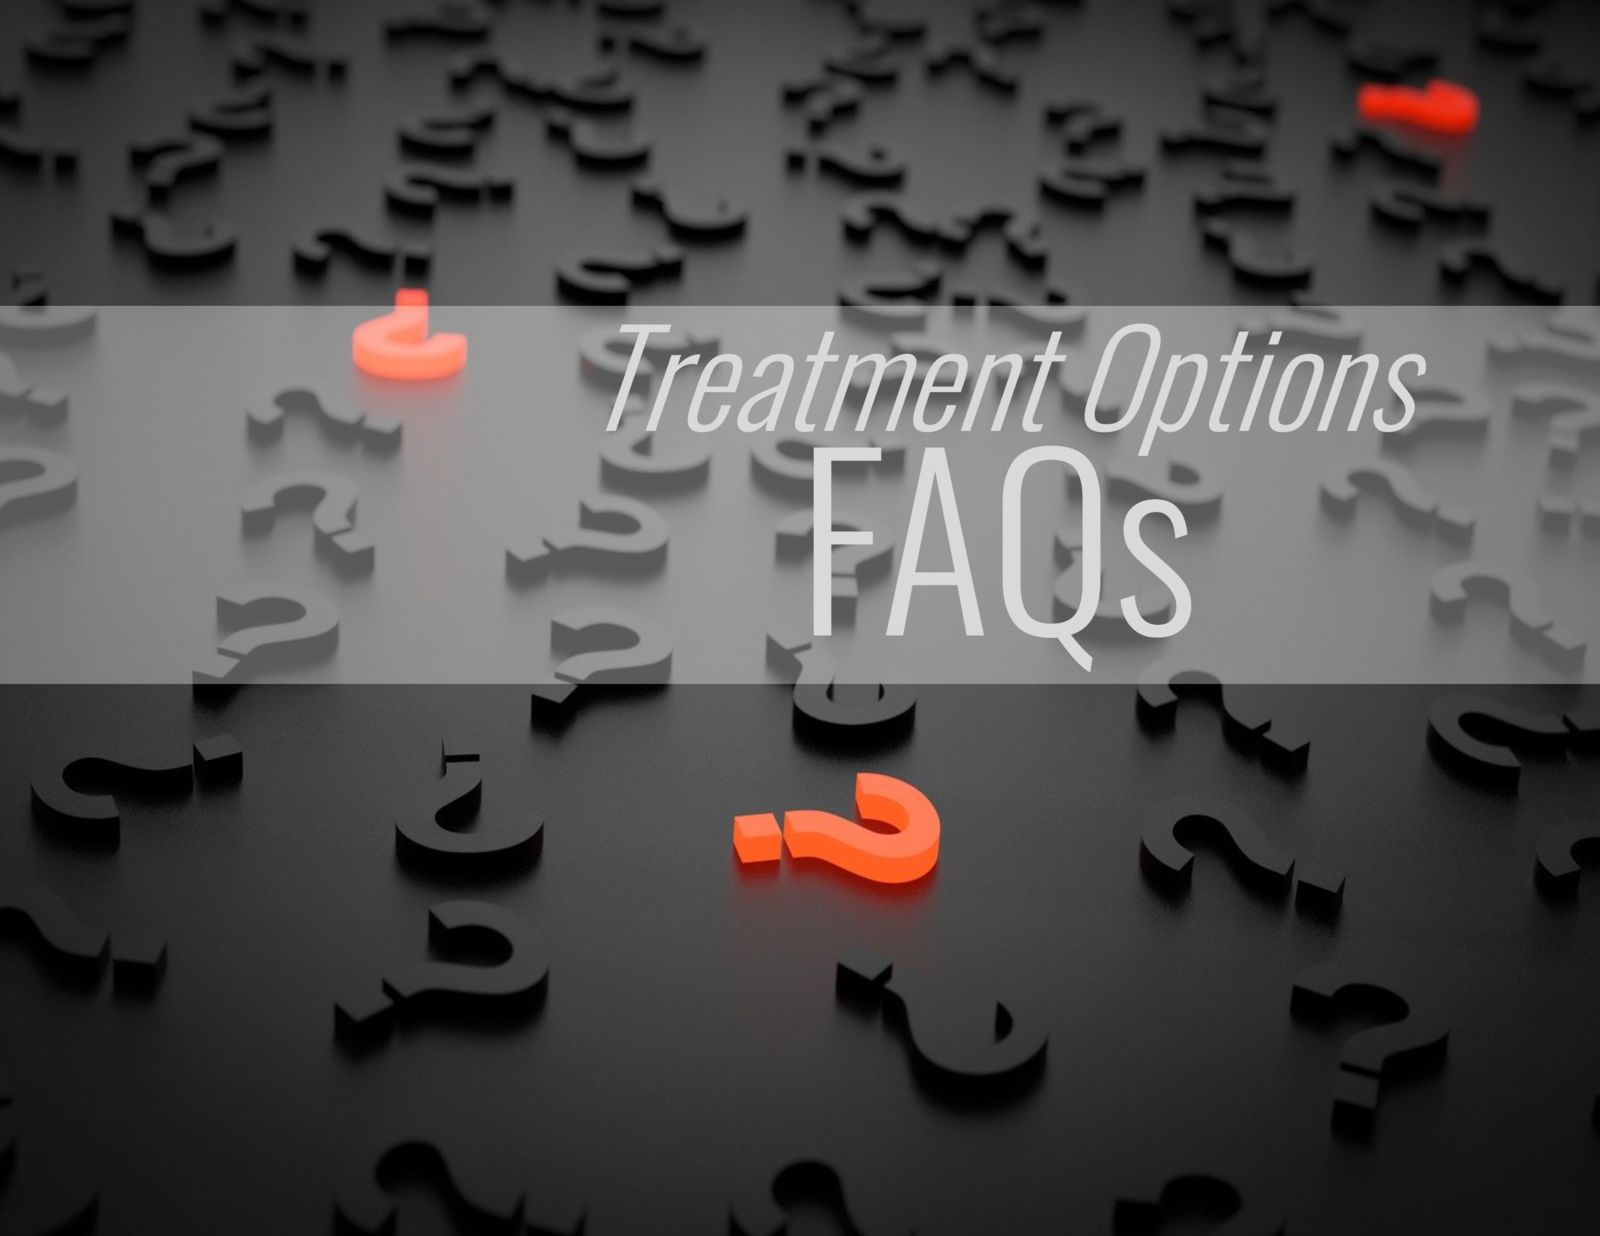 question marks and the words: Treatment Options FAQs